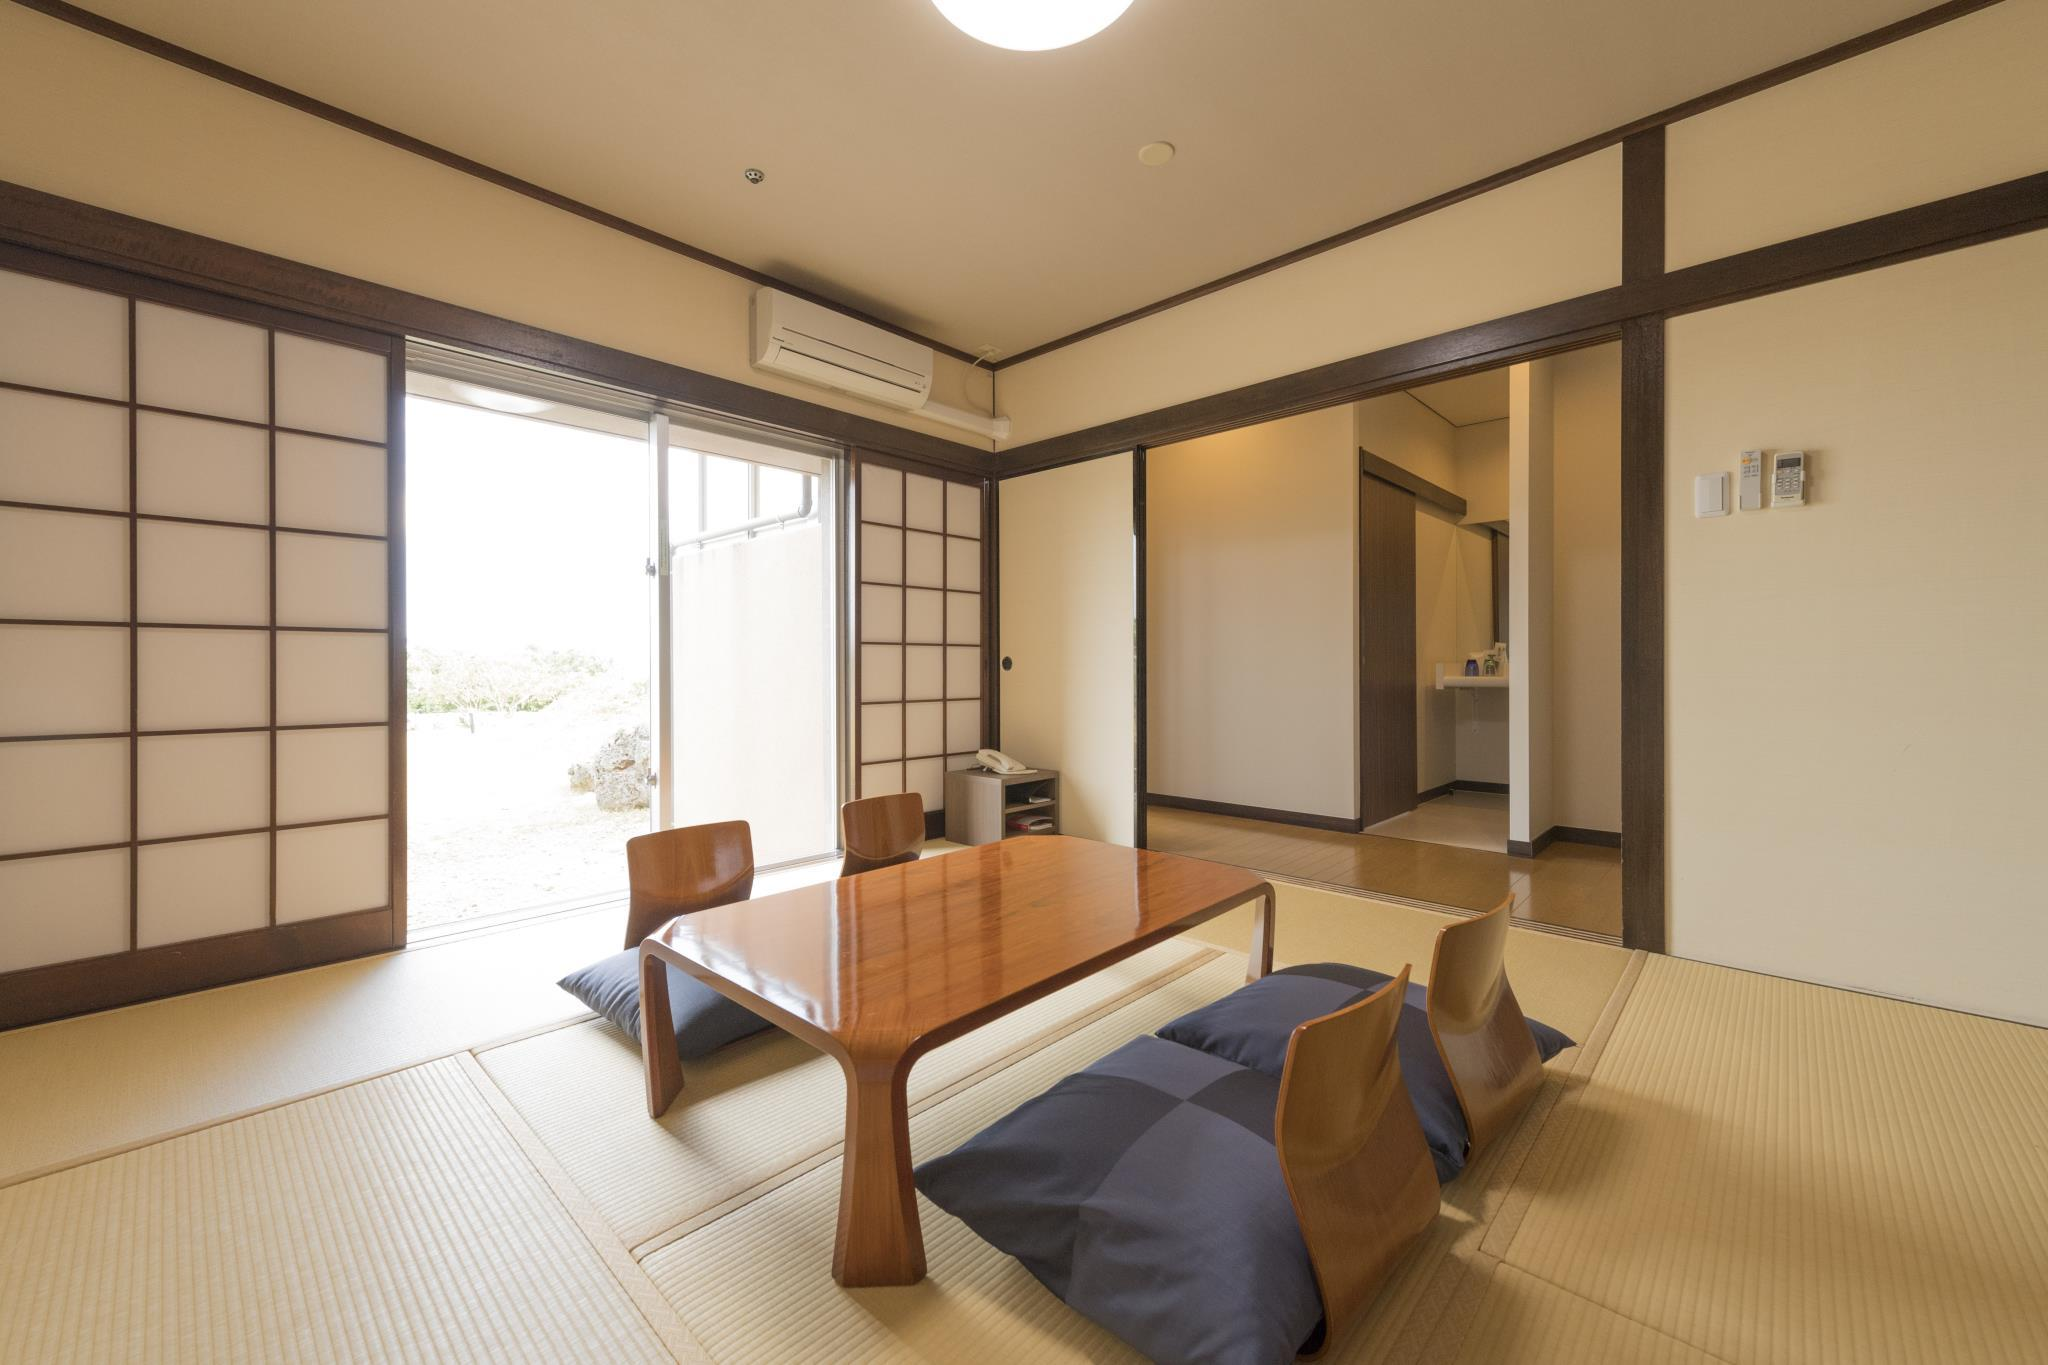 日式客房 - 有私人溫泉/禁菸 (Japanese Style Room with Private Onsen - Non-Smoking)